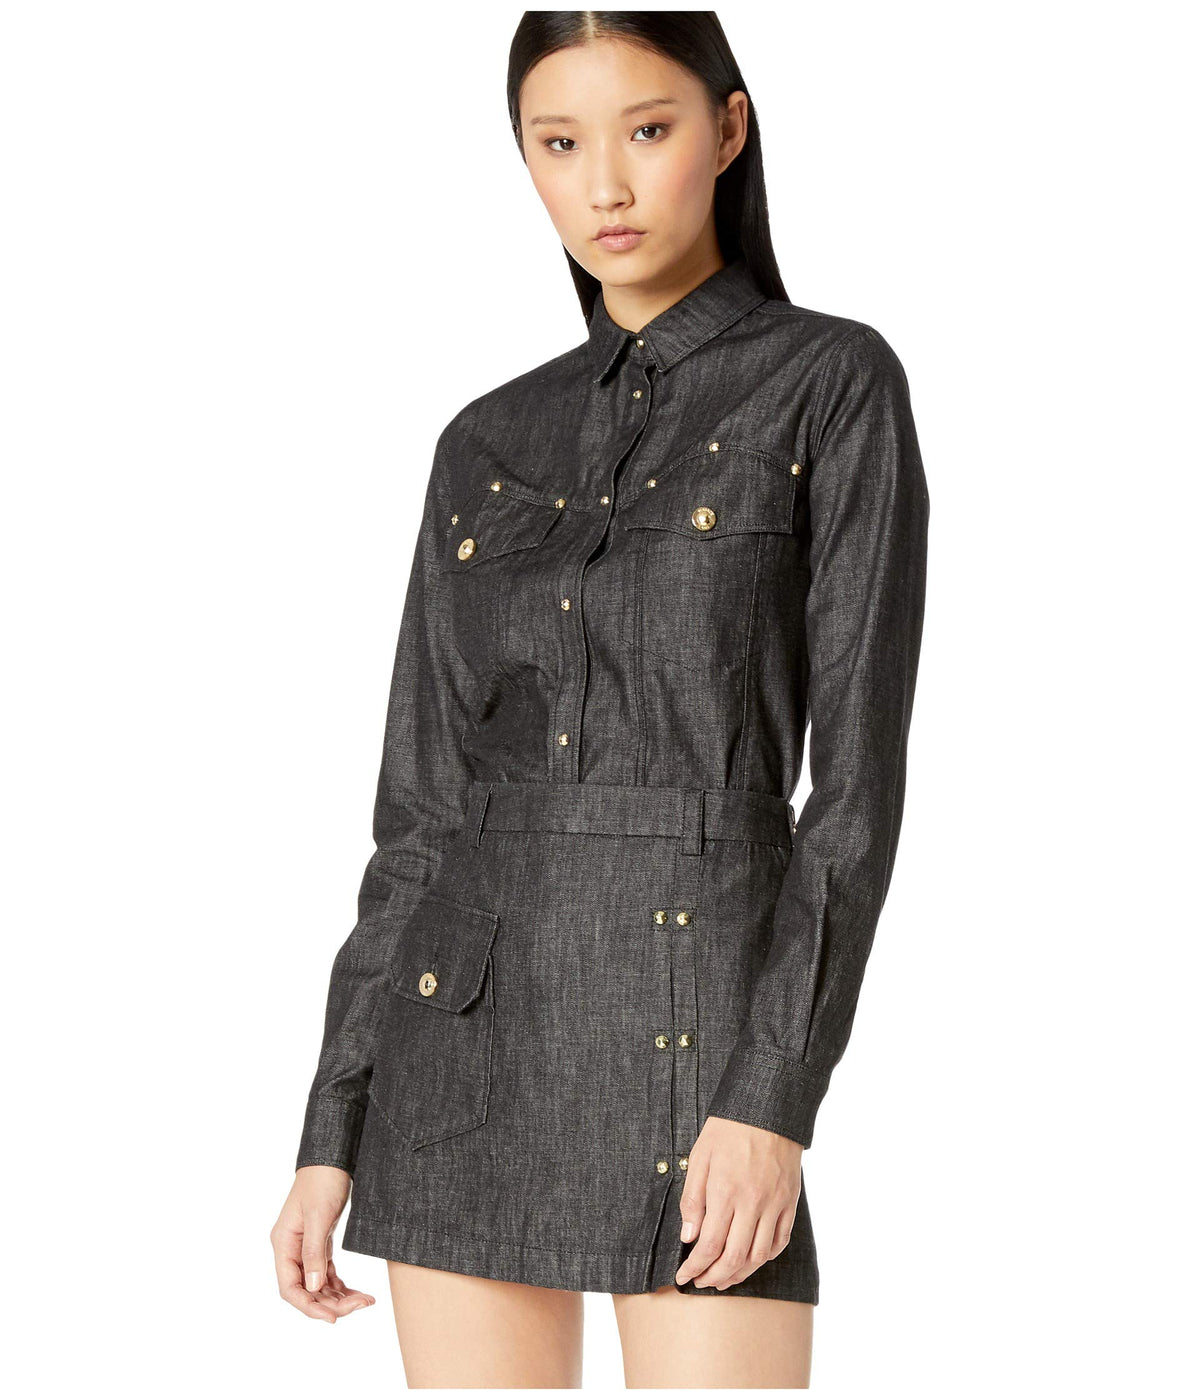 Denim Button-Up Shirt